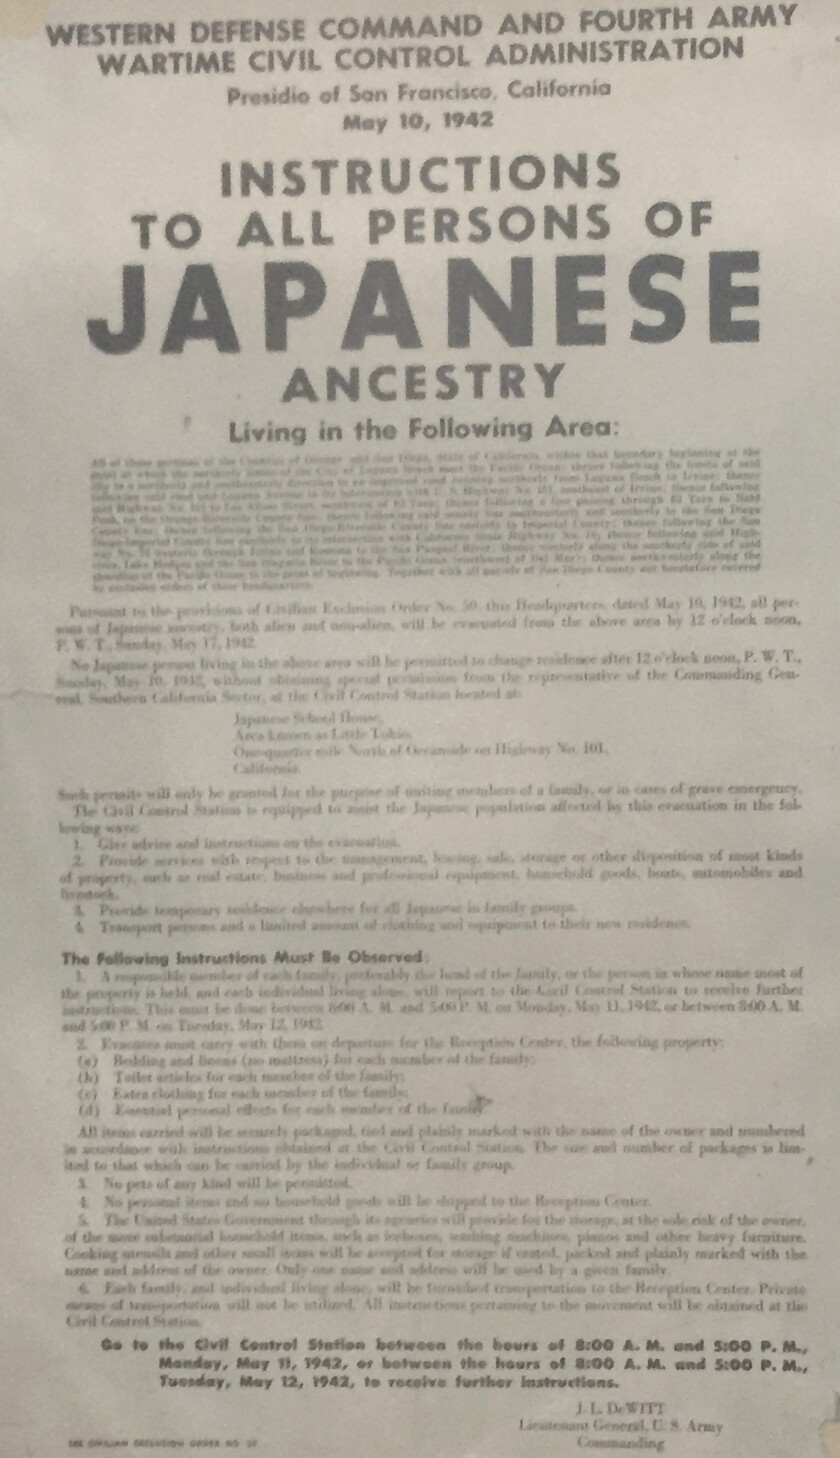 Executive Order 9066 — signed by President Franklin Delano Roosevelt on Feb. 19, 1942 — forced the evacuation of more than 120,000 Japanese-Americans from their homes to internment camps.